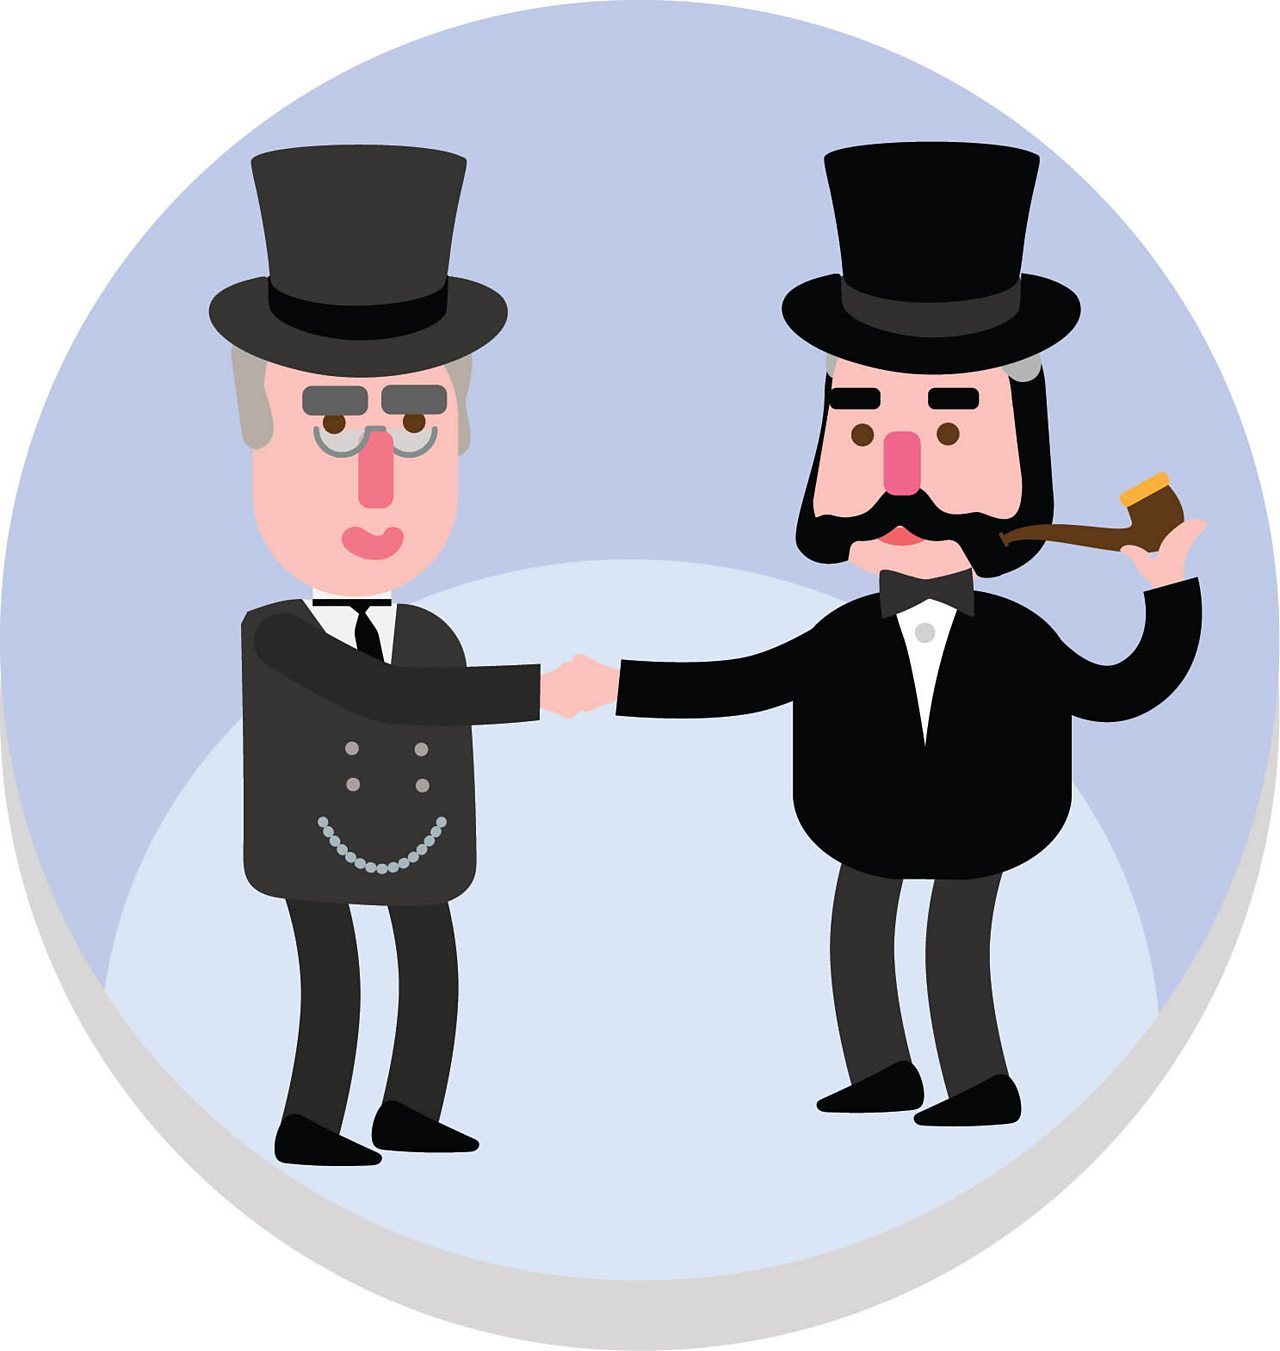 Animated image of two businessmen shaking hands